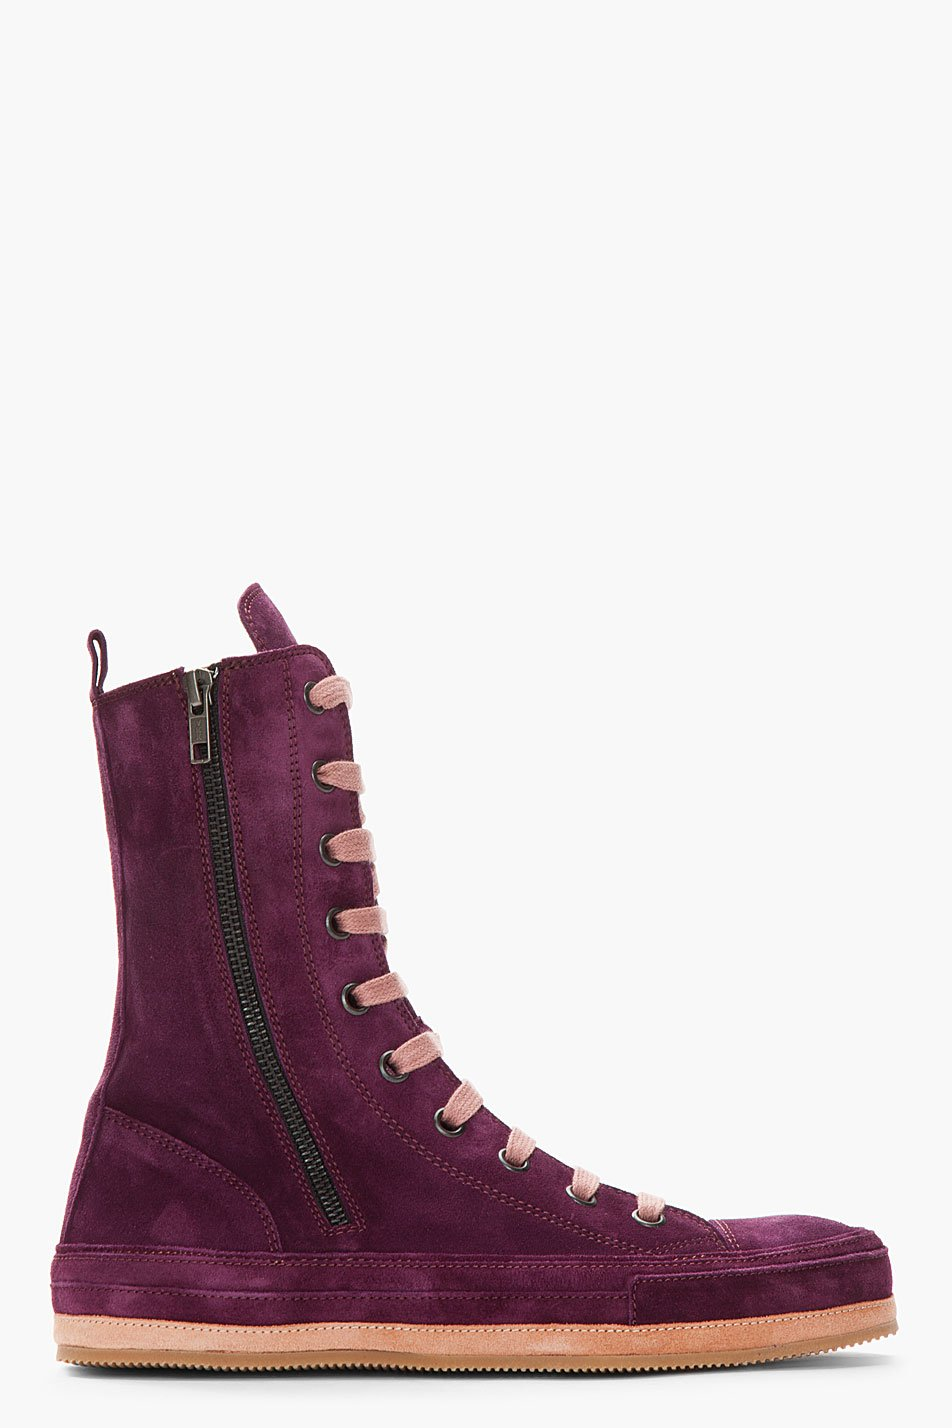 demeulemeester purple suede boots in purple for